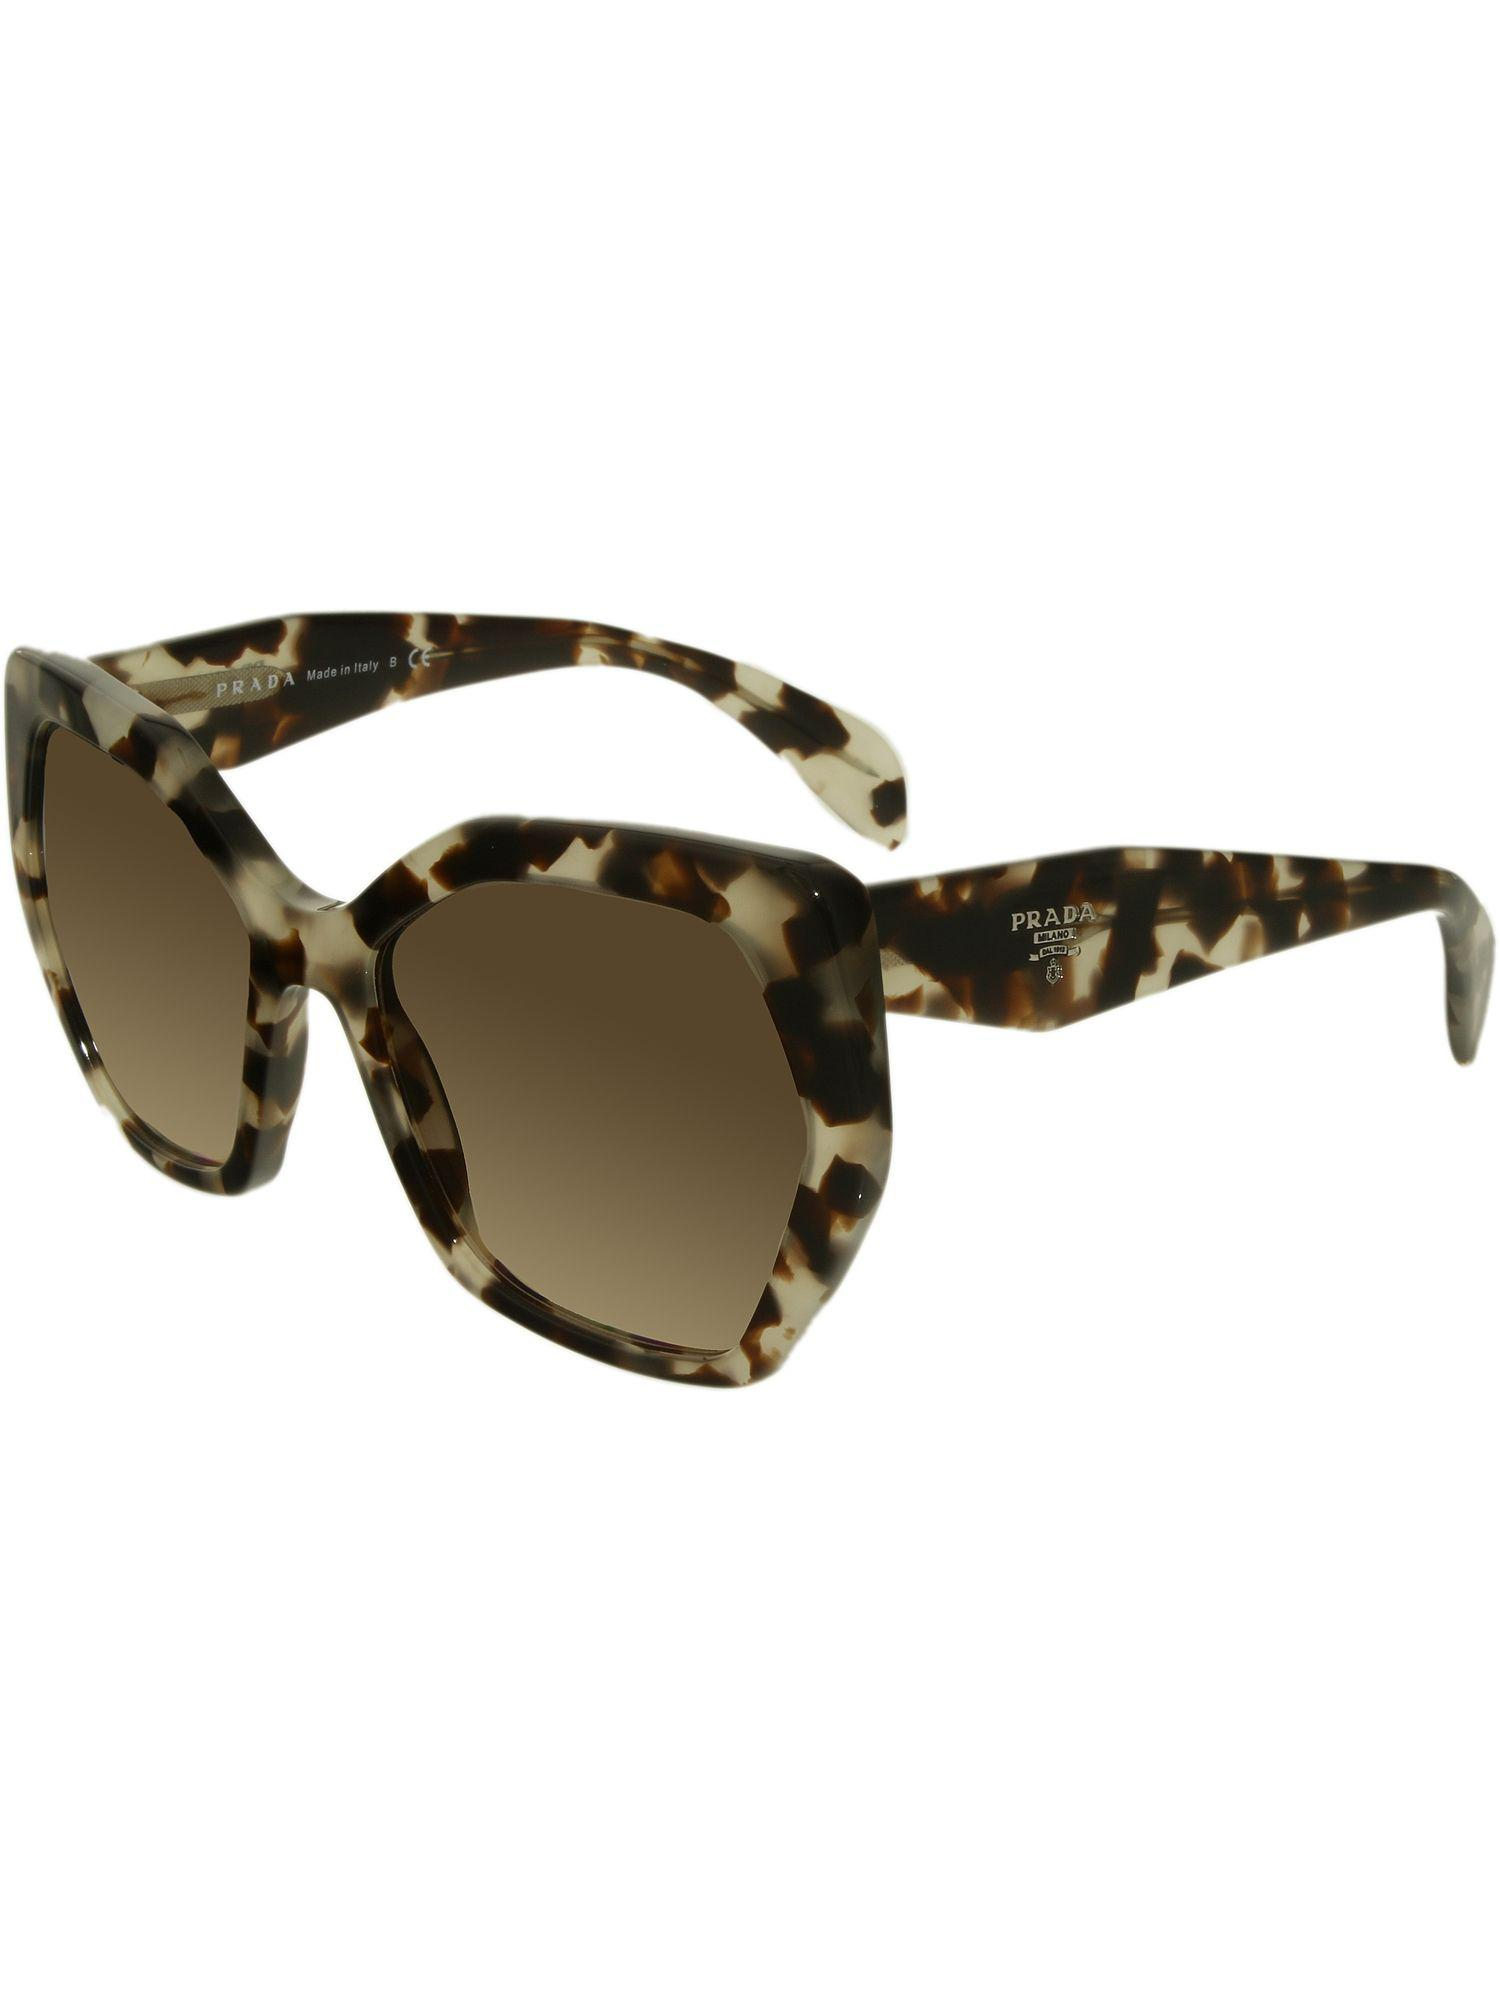 0399799697b1 Lyst - Prada Pr 16rs Uao3d0 Spotted Opal Brown Butterfly Sunglasses ...